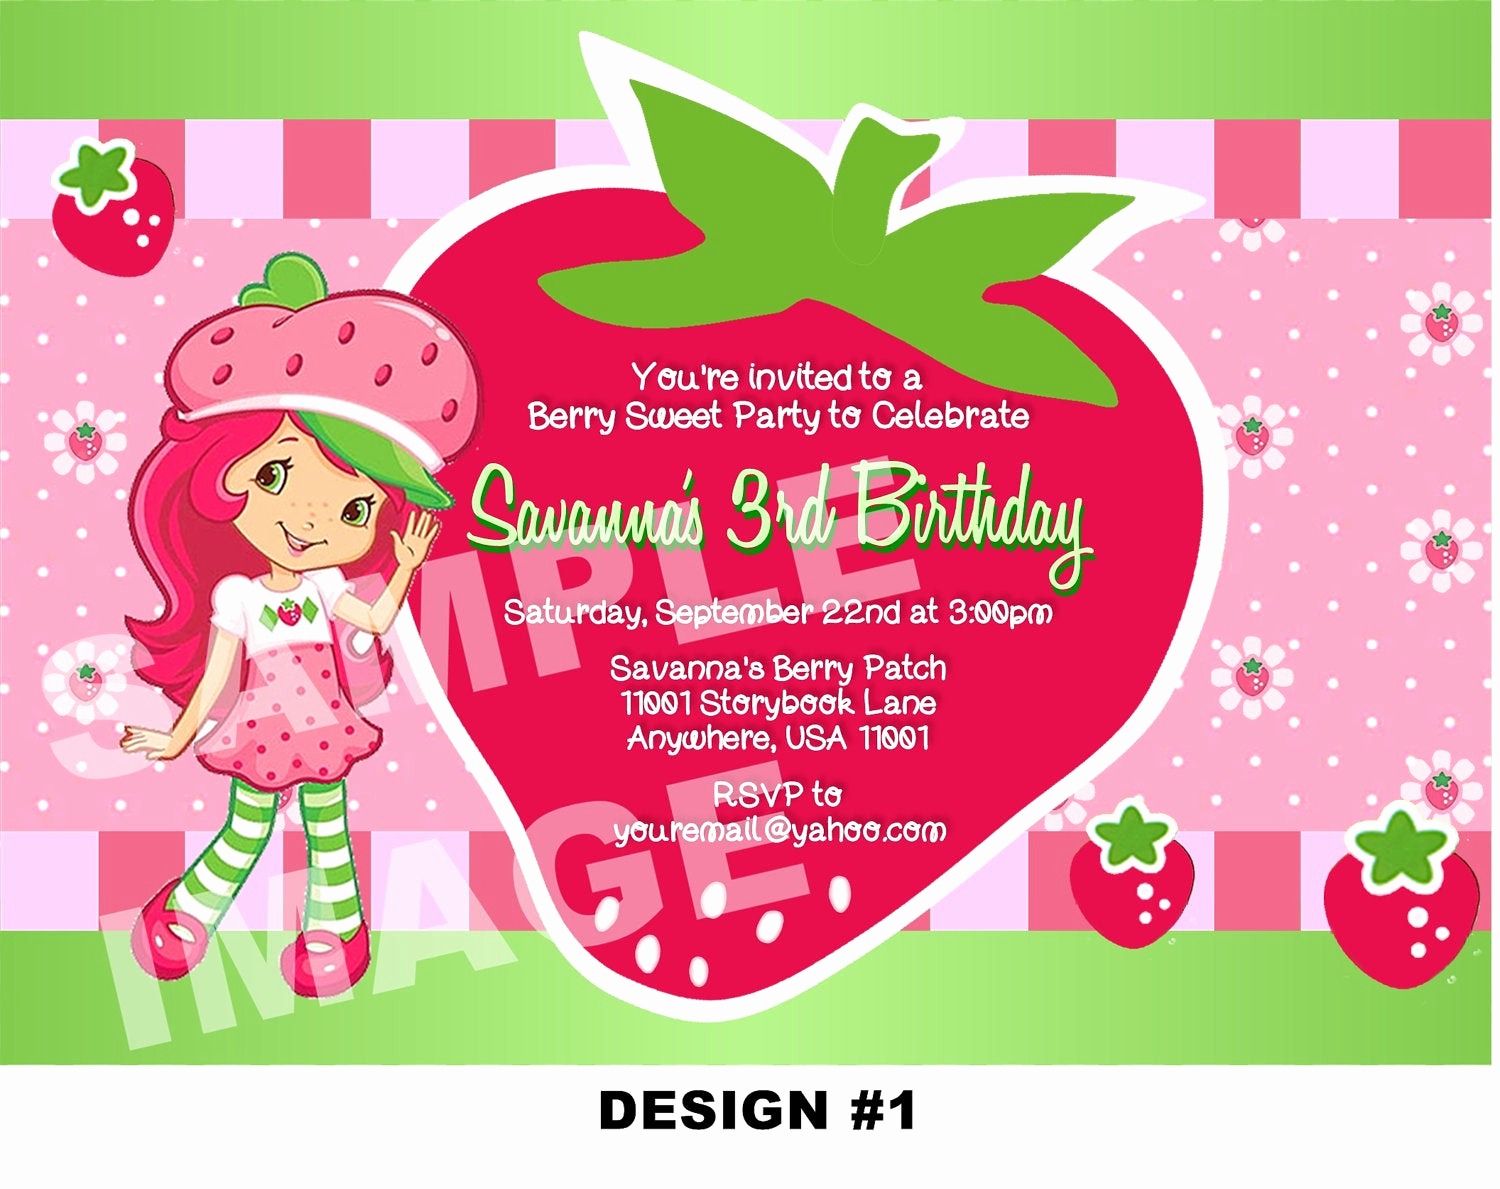 Strawberry Shortcake Invitation Templates New Strawberry Shortcake Invitation Strawberry Shortcake